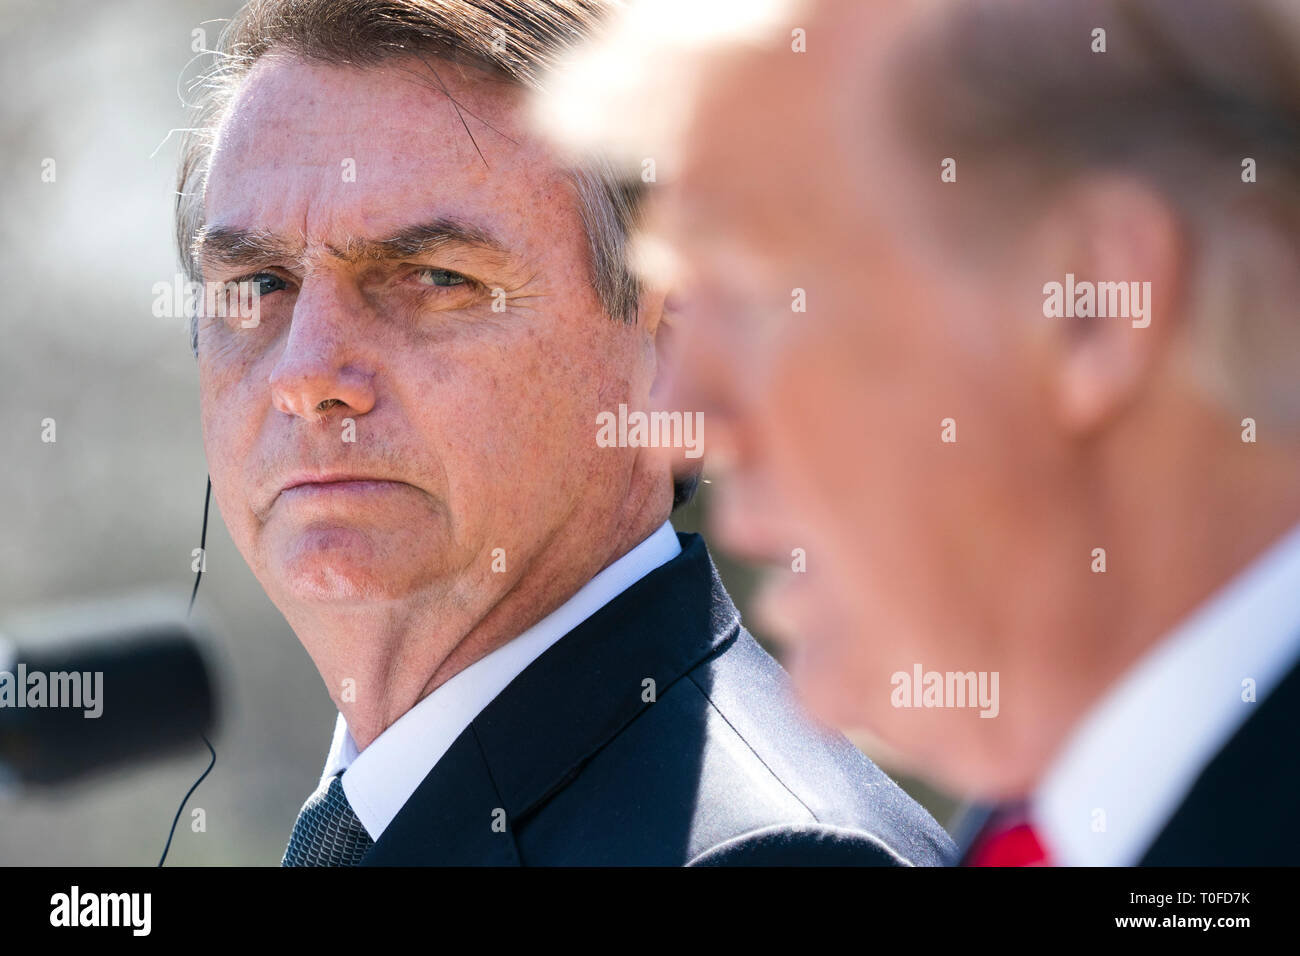 US President Donald J. Trump (R) and Brazilian President Jair Bolsonaro (L) speak at a press conference in the Rose Garden of the White House in Washington, DC, USA, 19 March 2019. Bolsonaro, a right-wing nationalist, earned the nickname the 'Trump of the Tropics.' Credit: Jim LoScalzo / Pool via CNP /MediaPunch - Stock Image